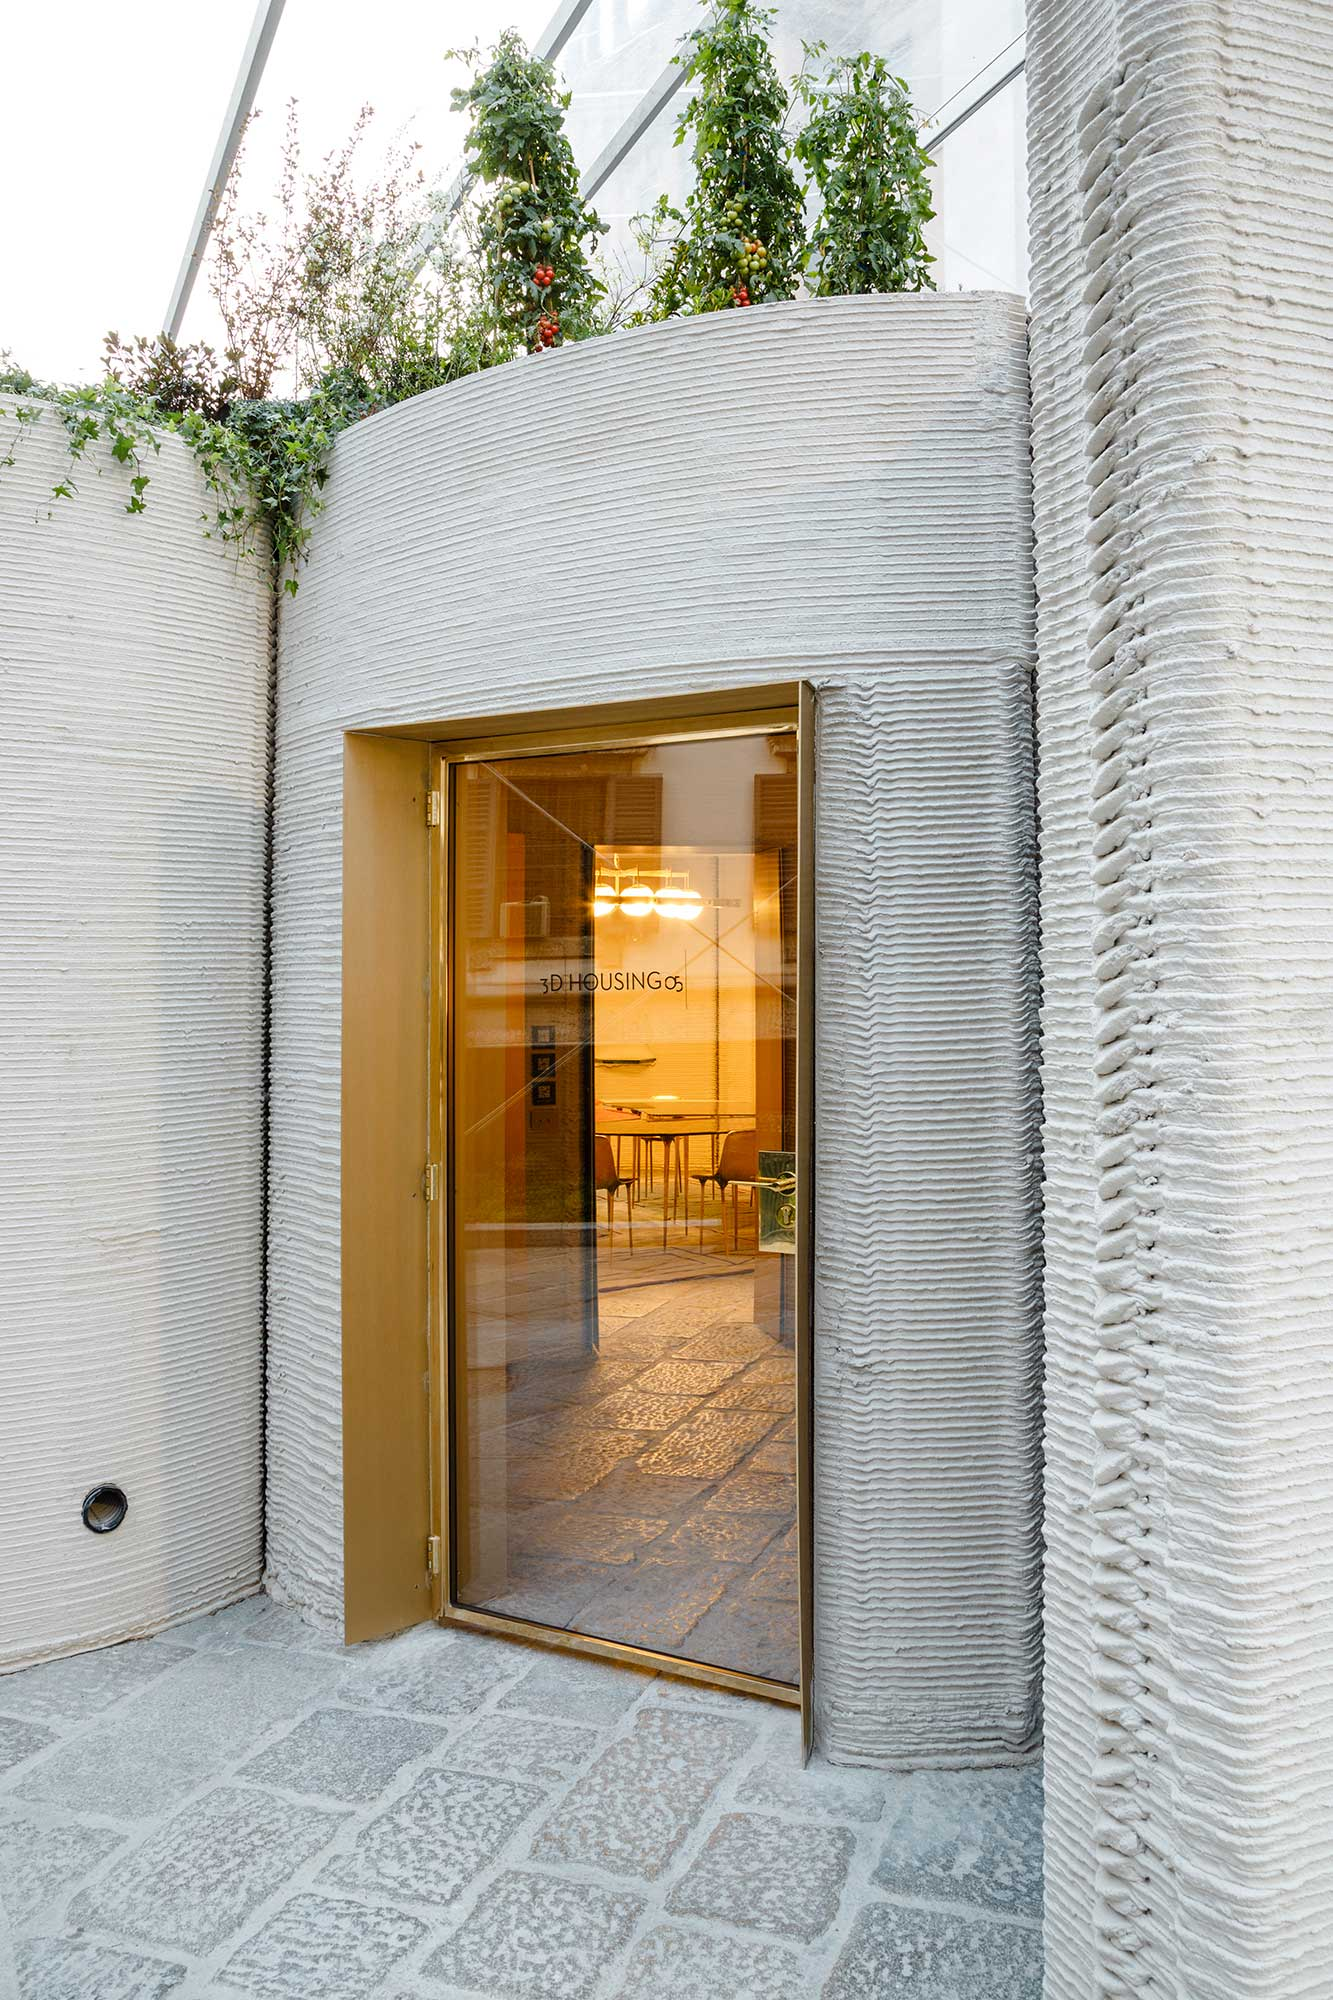 3D-Printed-House-by-Massamiliano-Locatelli-CLS-Architetti-Milan-20.jpg